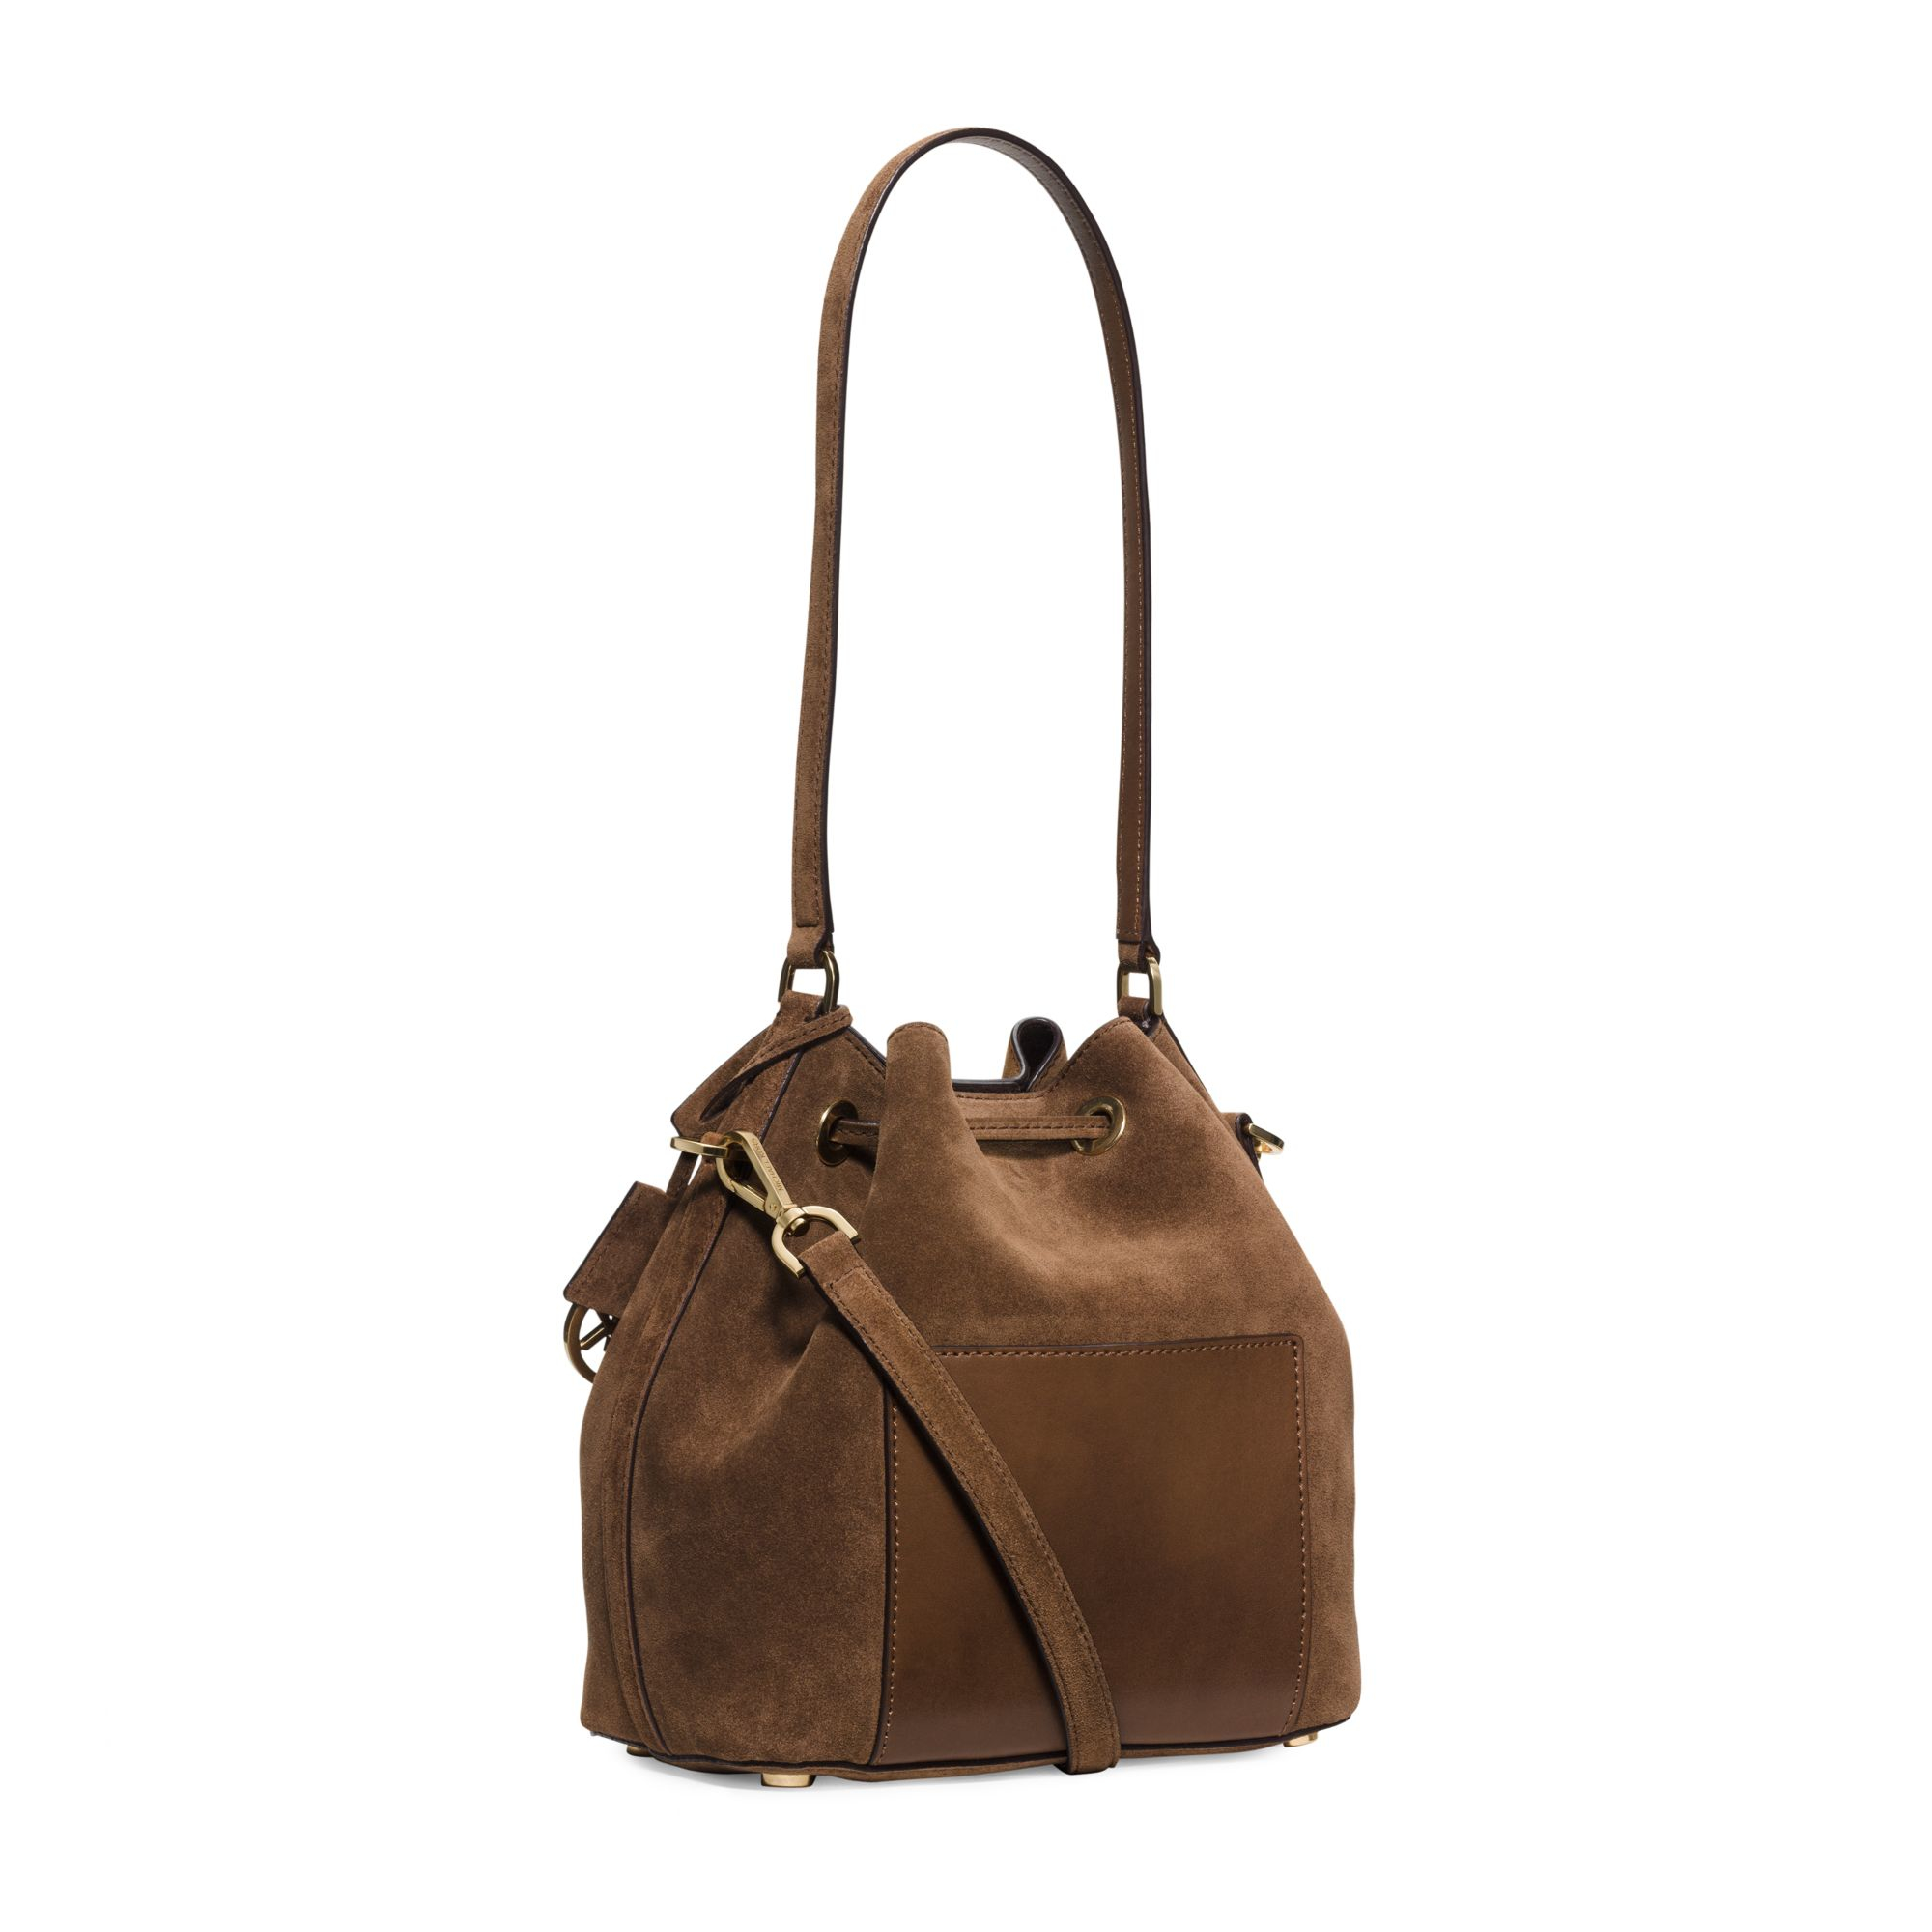 Lyst - Michael Kors Greenwich Suede Bucket Bag in Brown 64043243ece84